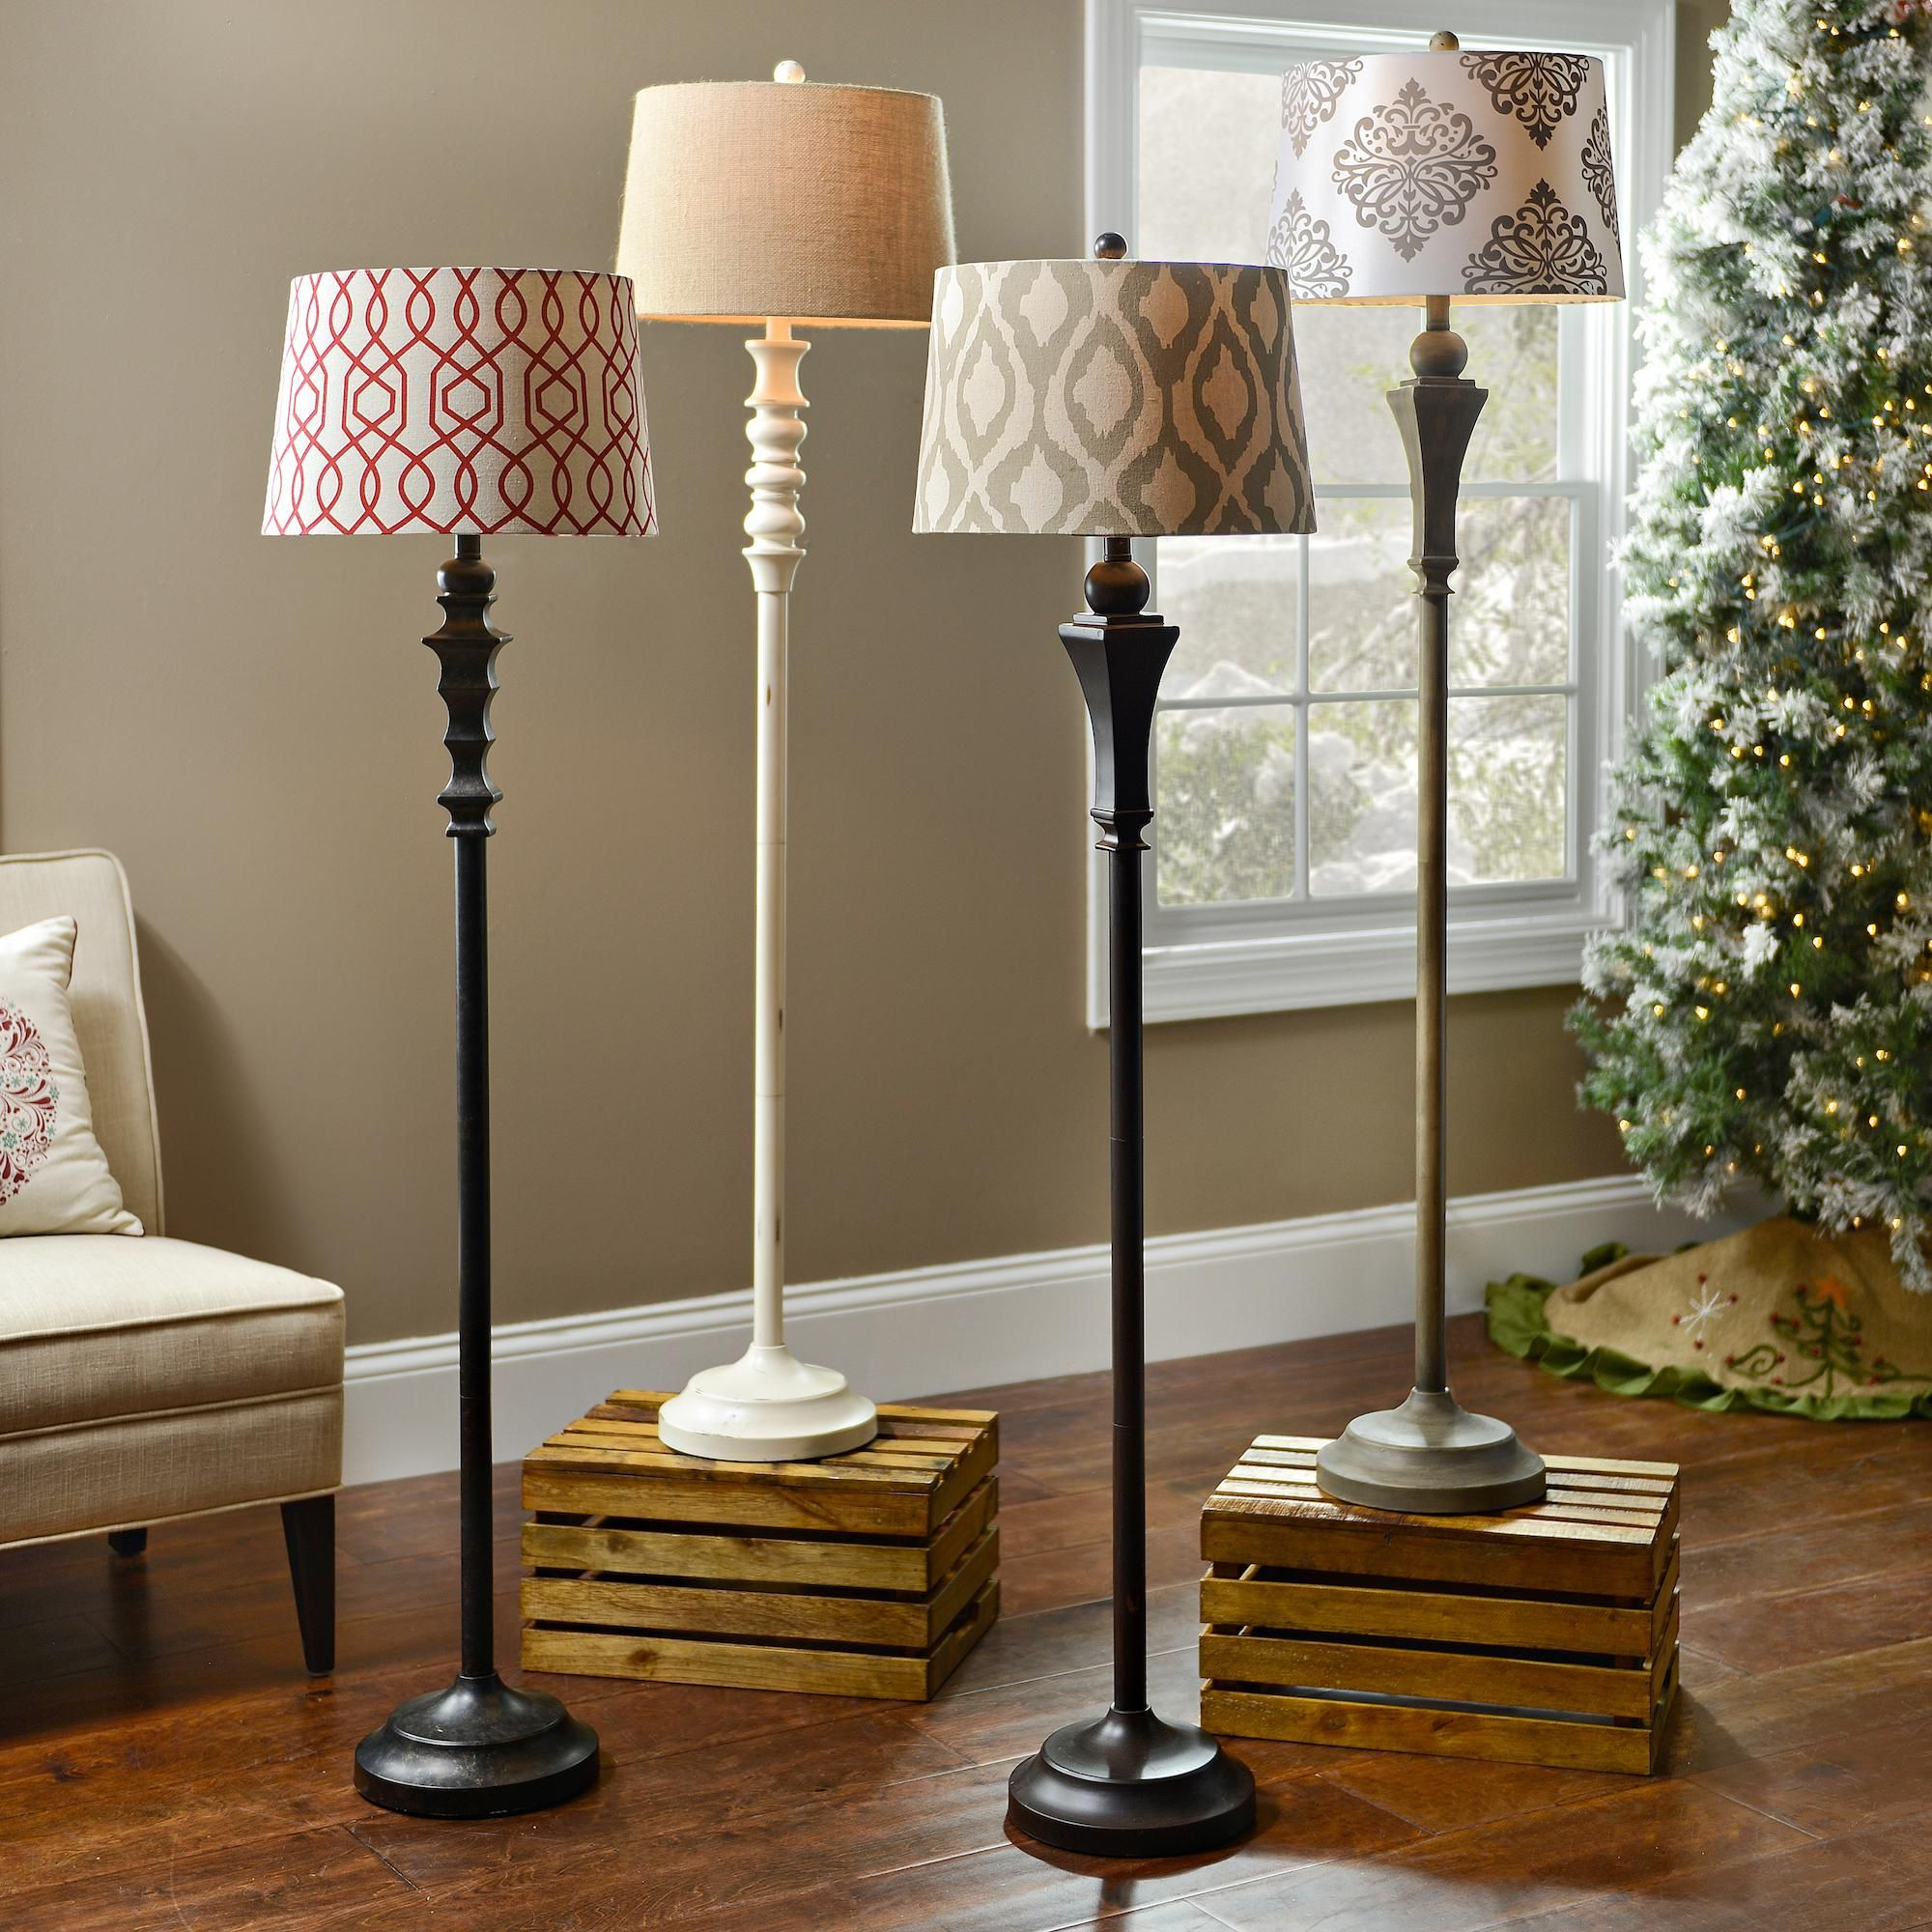 floor lamp living room decoration photo gallery add light to a dim corner with stylish love your